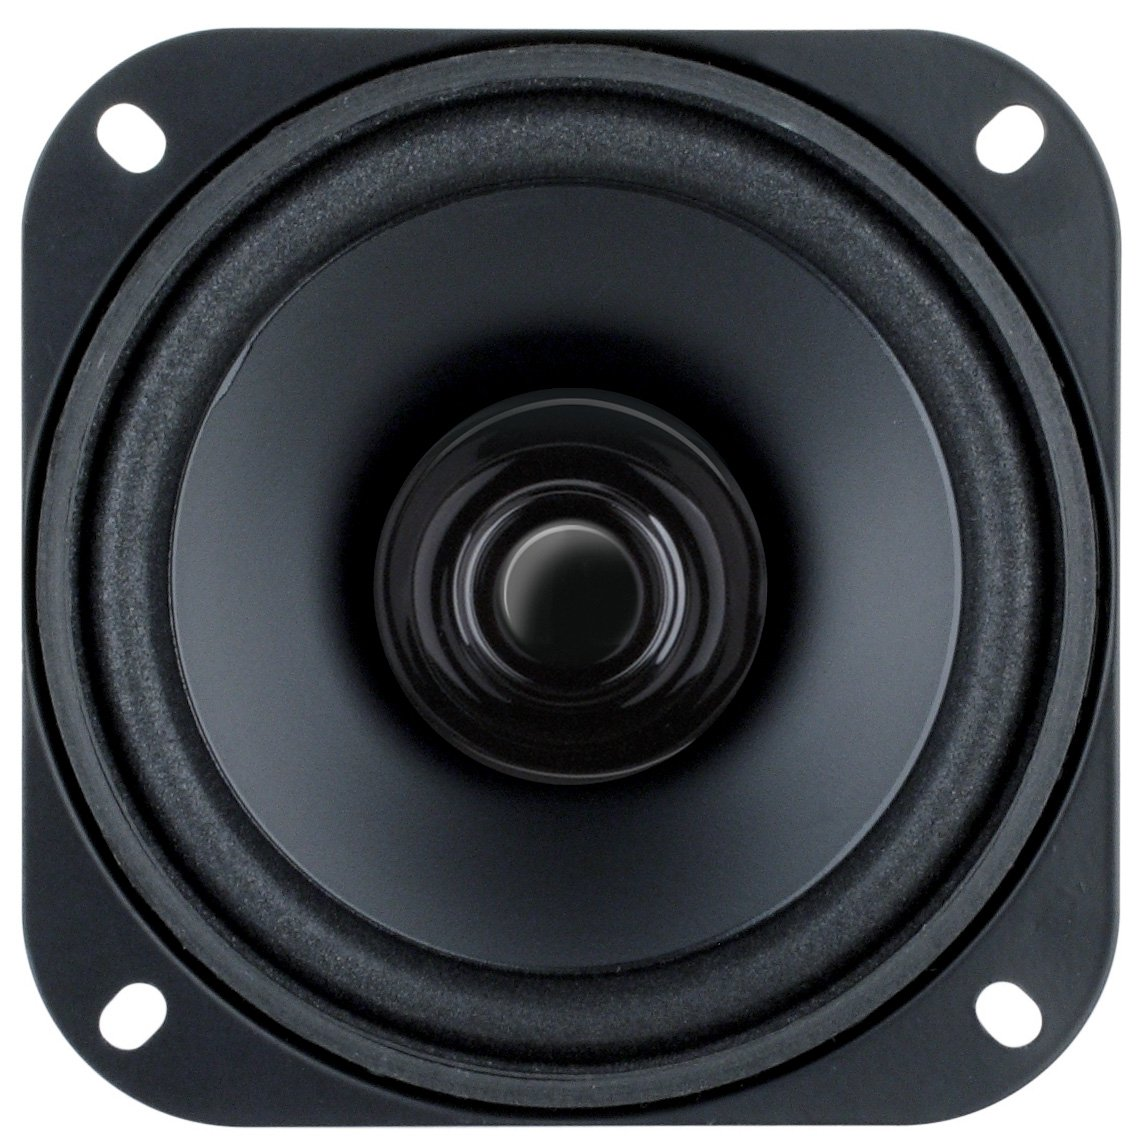 BOSS Audio BRS40 50 Watt, 4 Inch, Full Range, Replacement Car Speaker (Sold individually) by BOSS Audio (Image #1)